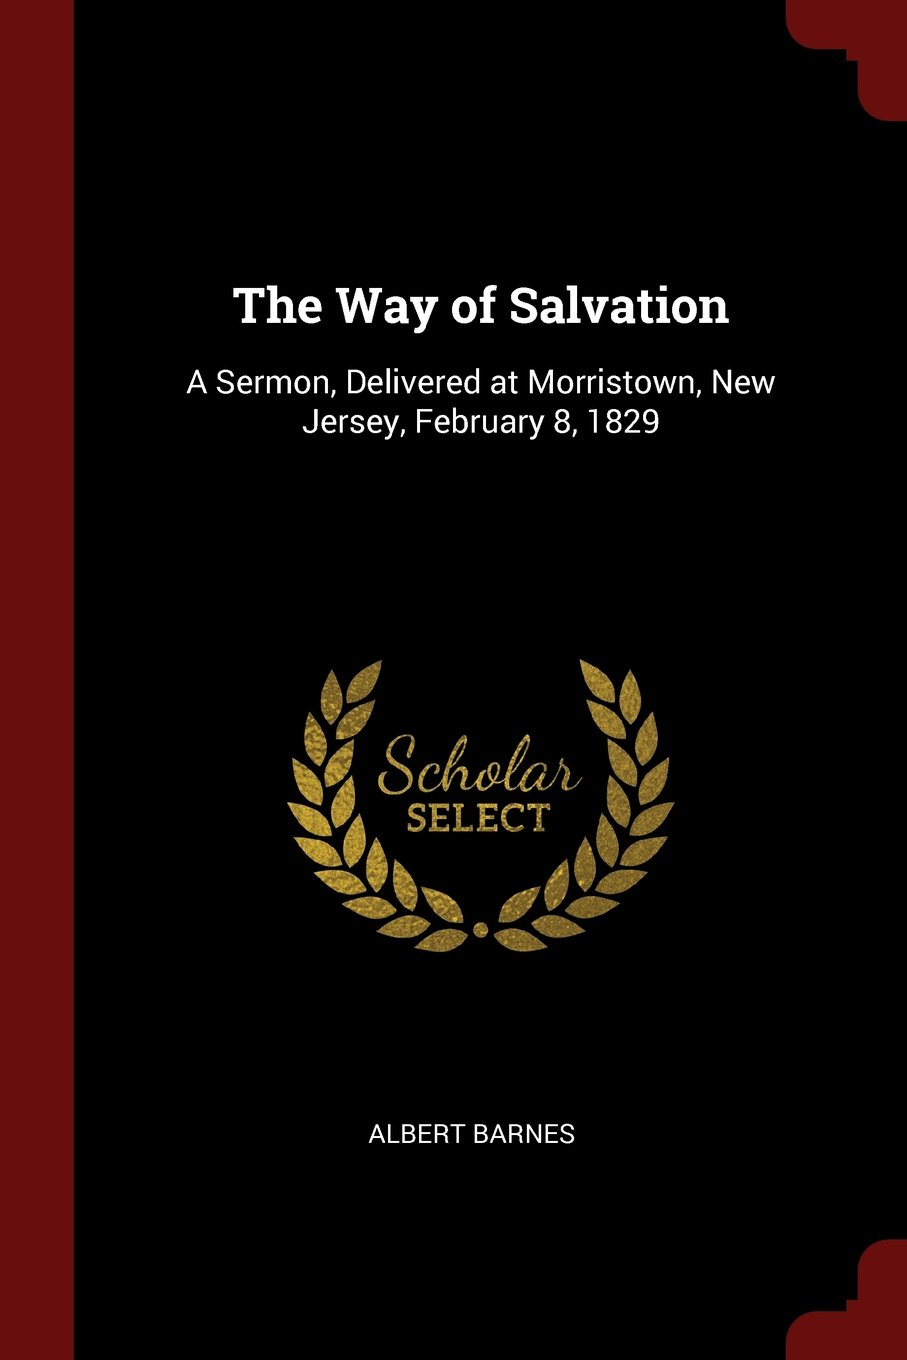 Download The Way of Salvation: A Sermon, Delivered at Morristown, New Jersey, February 8, 1829 ebook